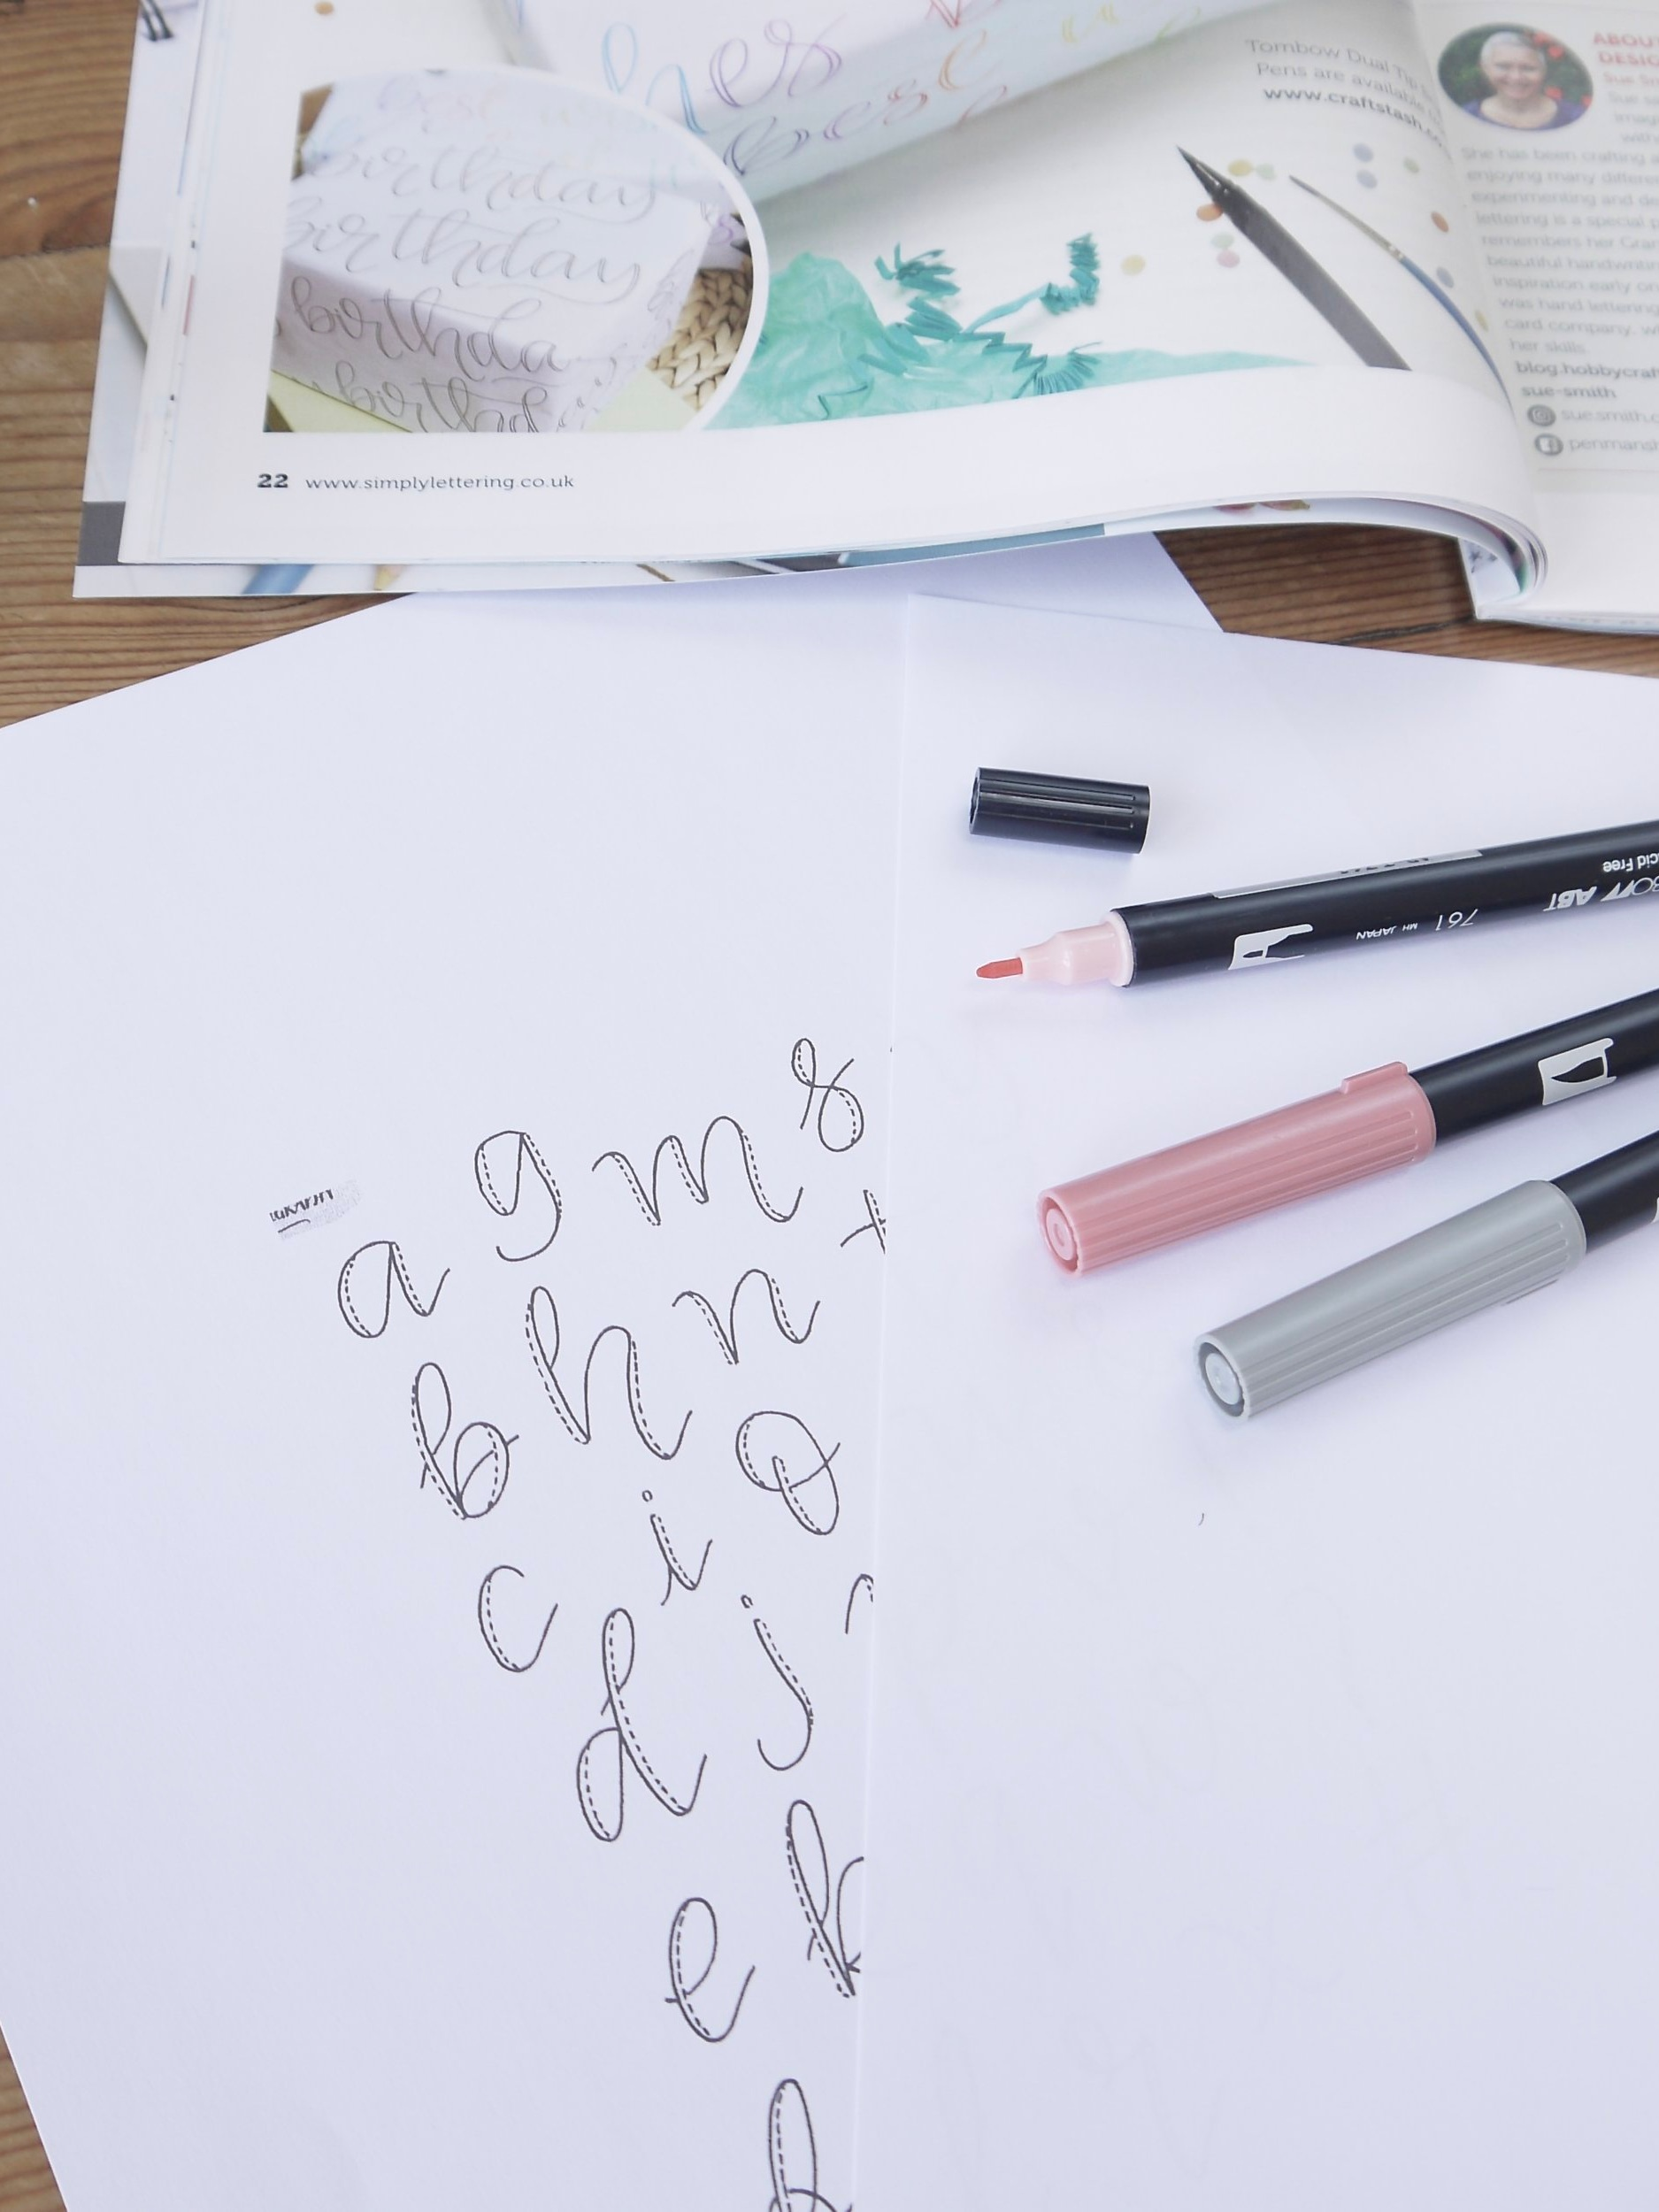 Materials needed for making faux calligraphy wrapping paper, plus a scaled-down version of the alphabet template.